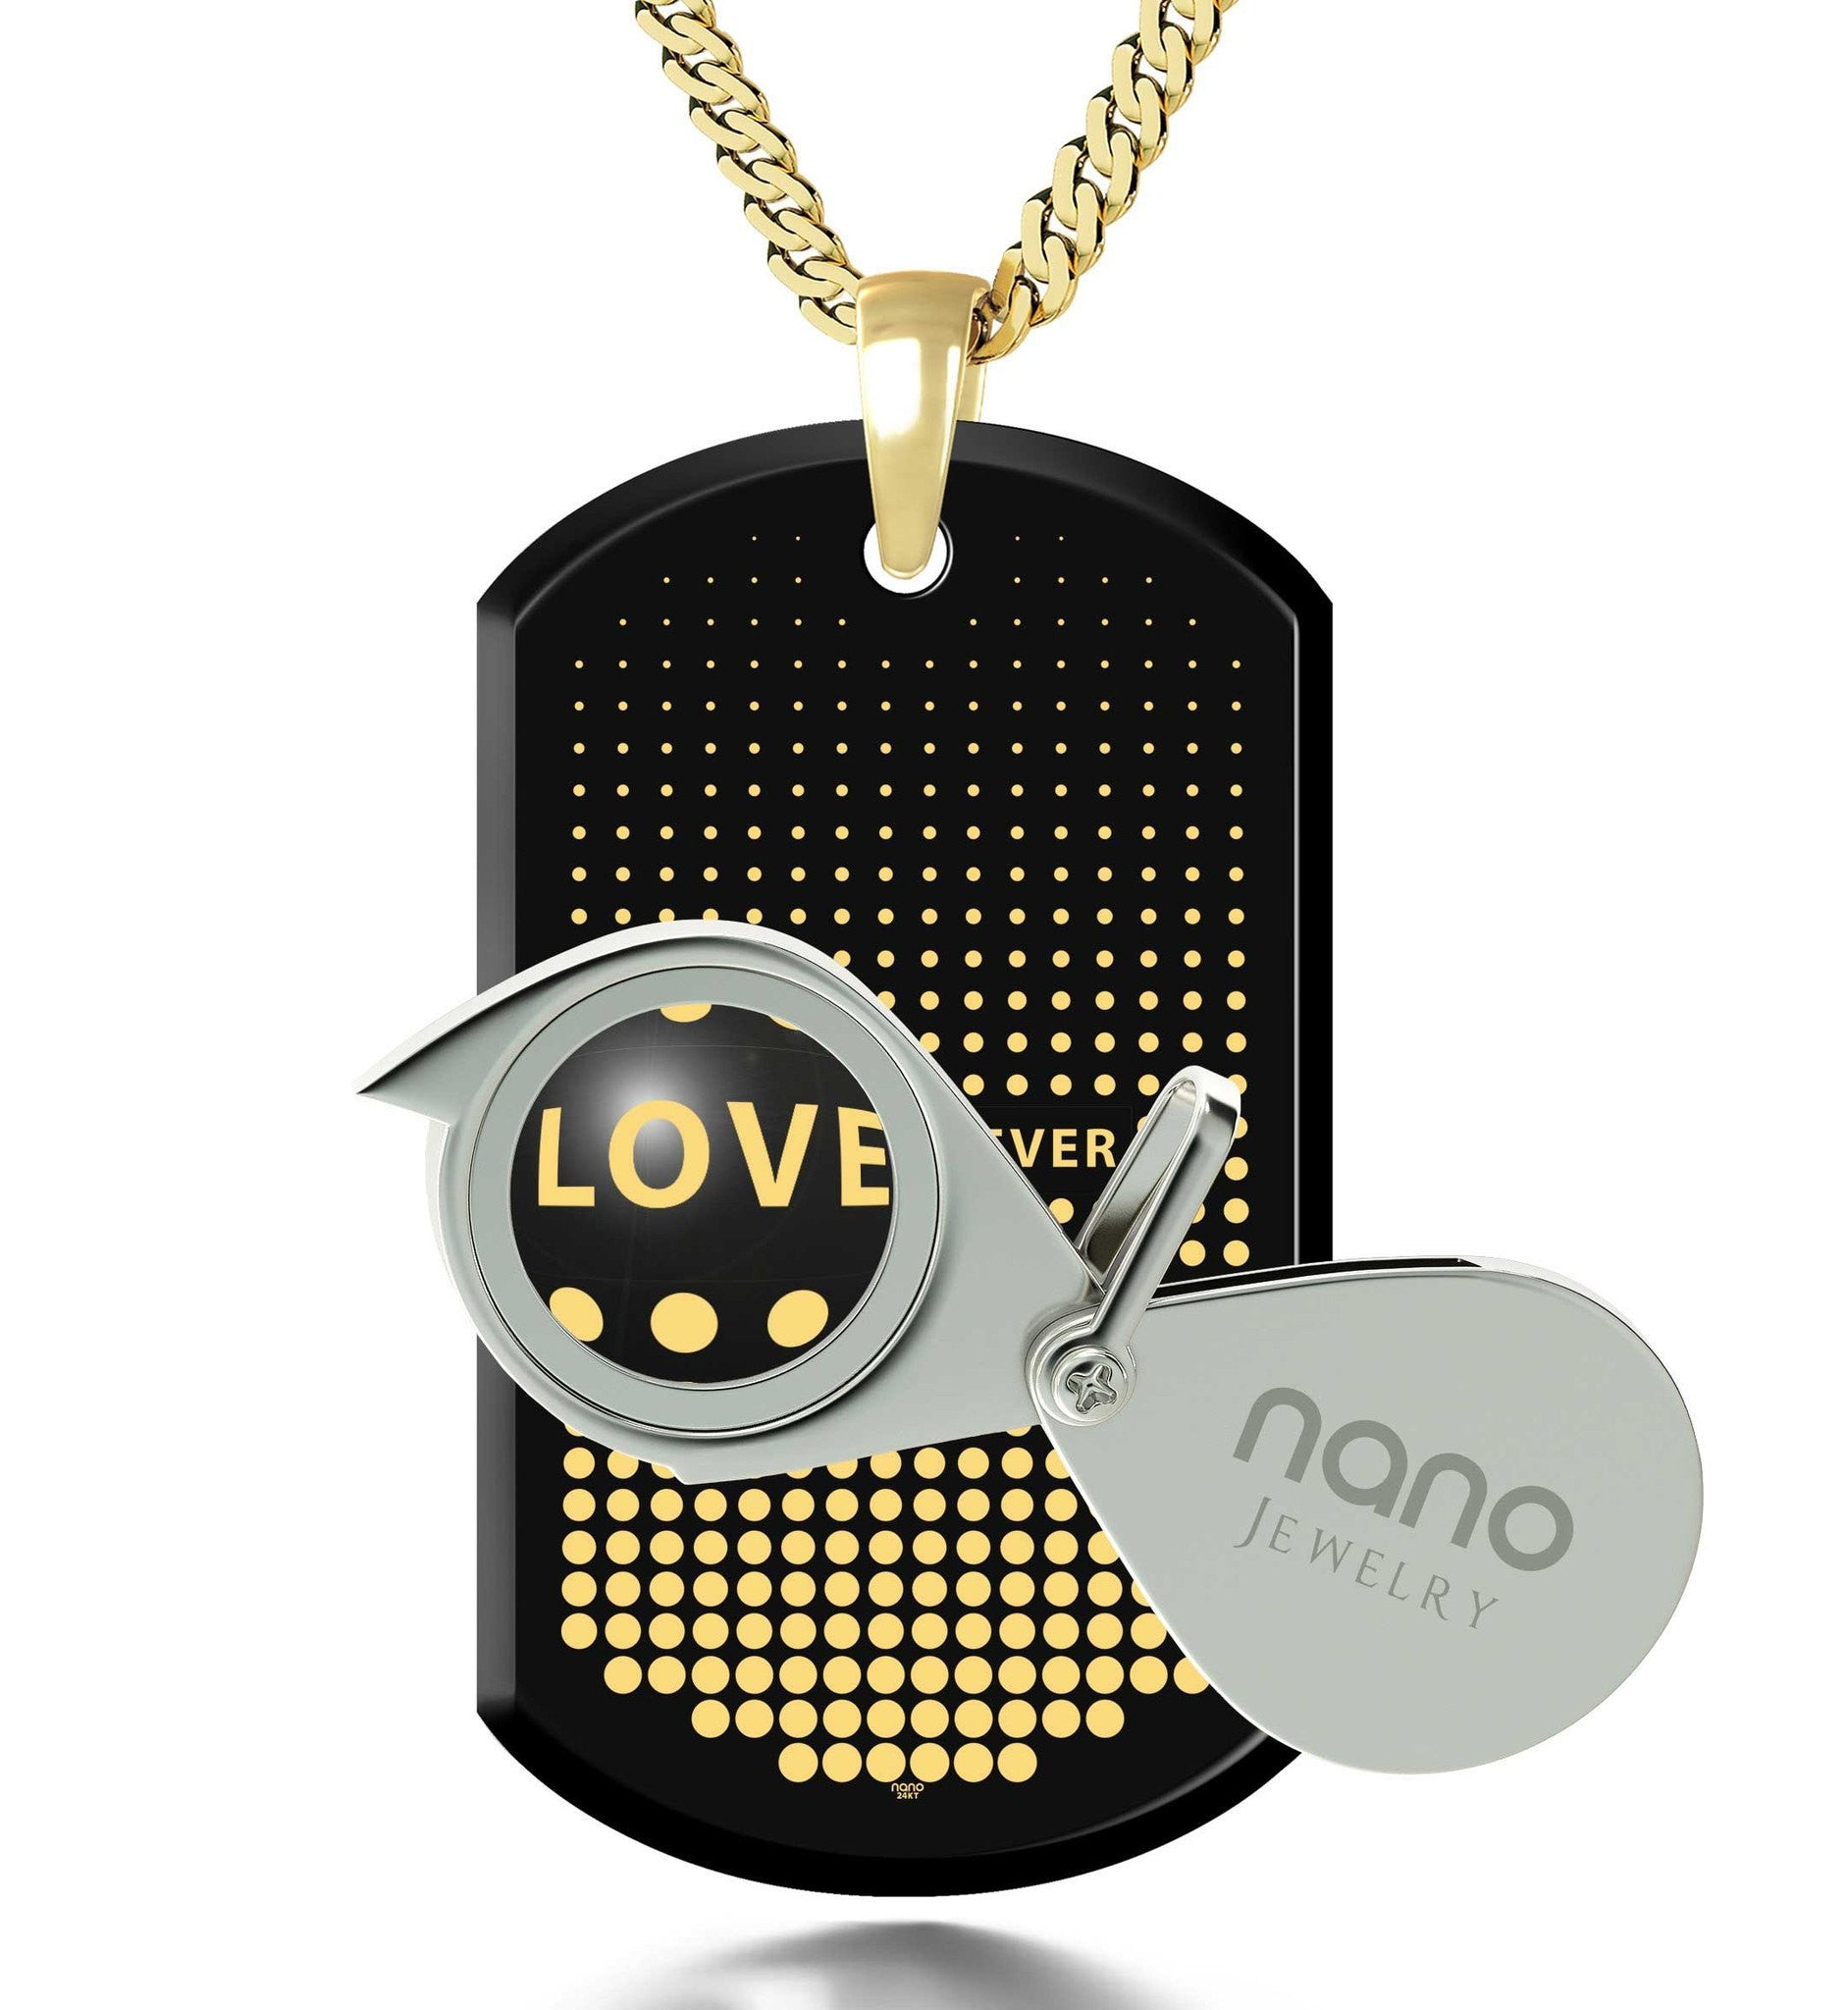 Christmas Ideas for Guys, Meaningful Gold Filled Necklace, What to Give Your Boyfriend for Valentines Day, by Nano Jewelry